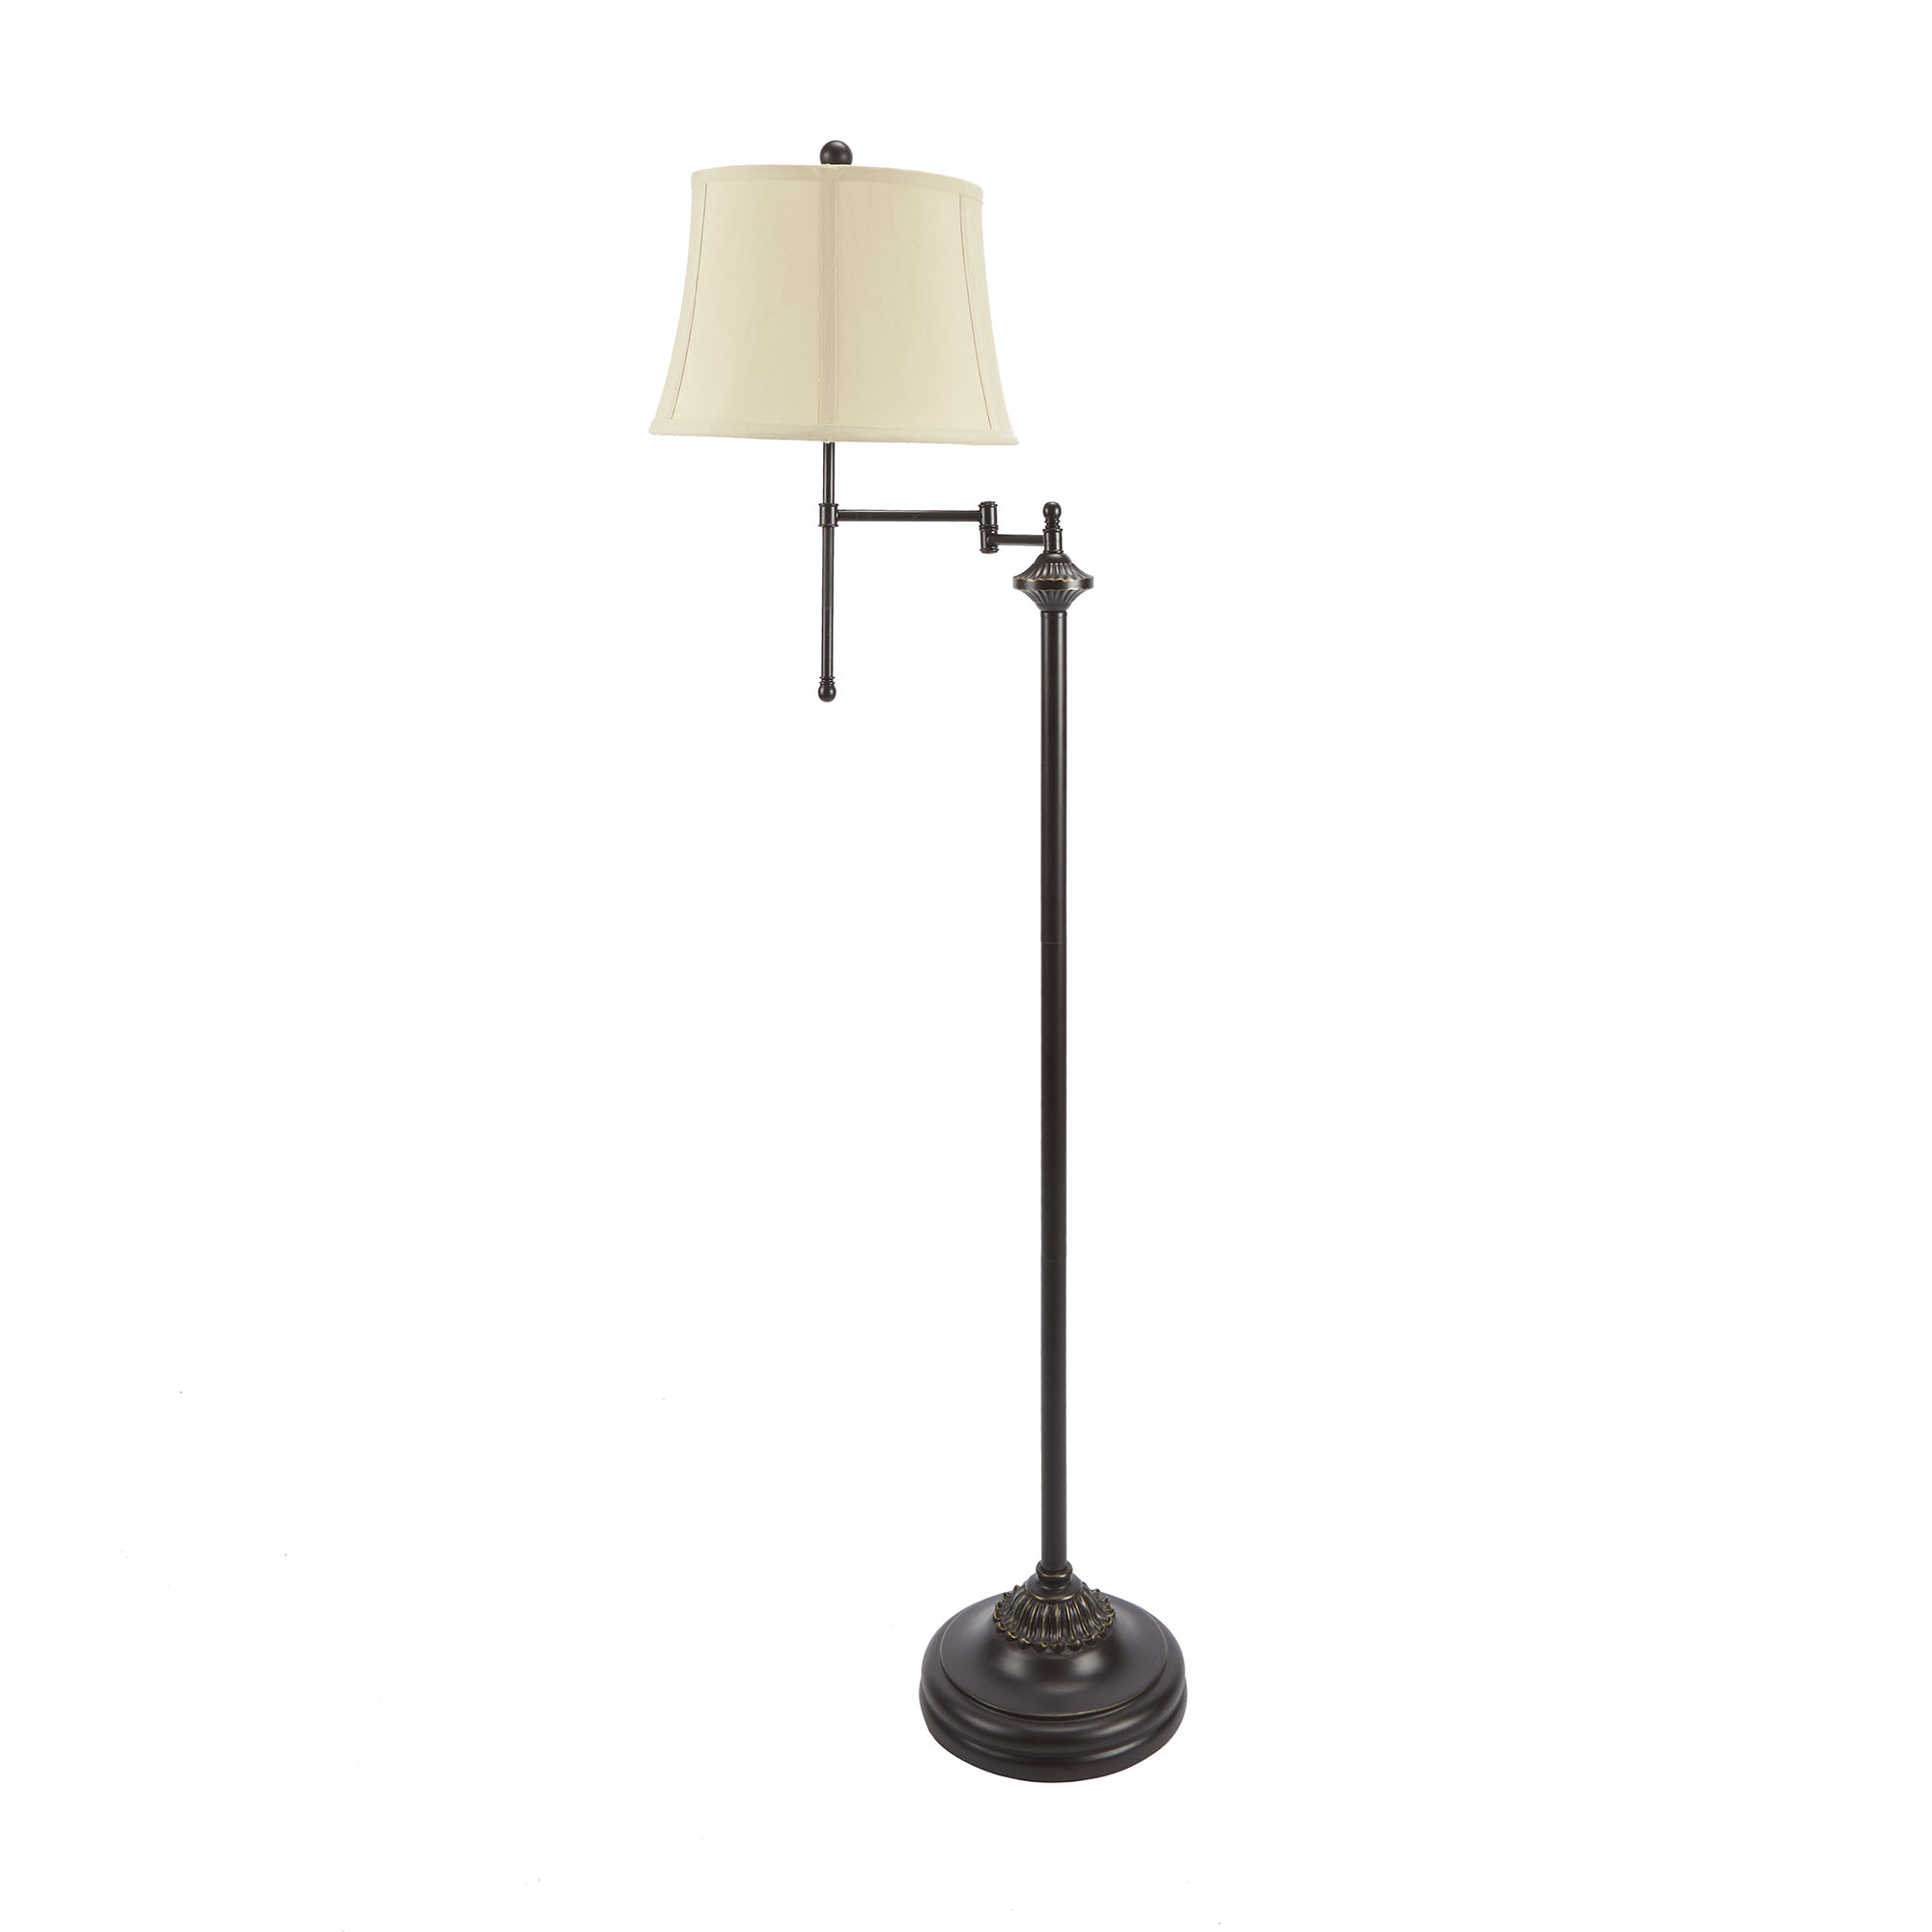 Better Homes U0026 Gardens Adjustable Arm Metal Floor Lamp, Nickel   Walmart.com